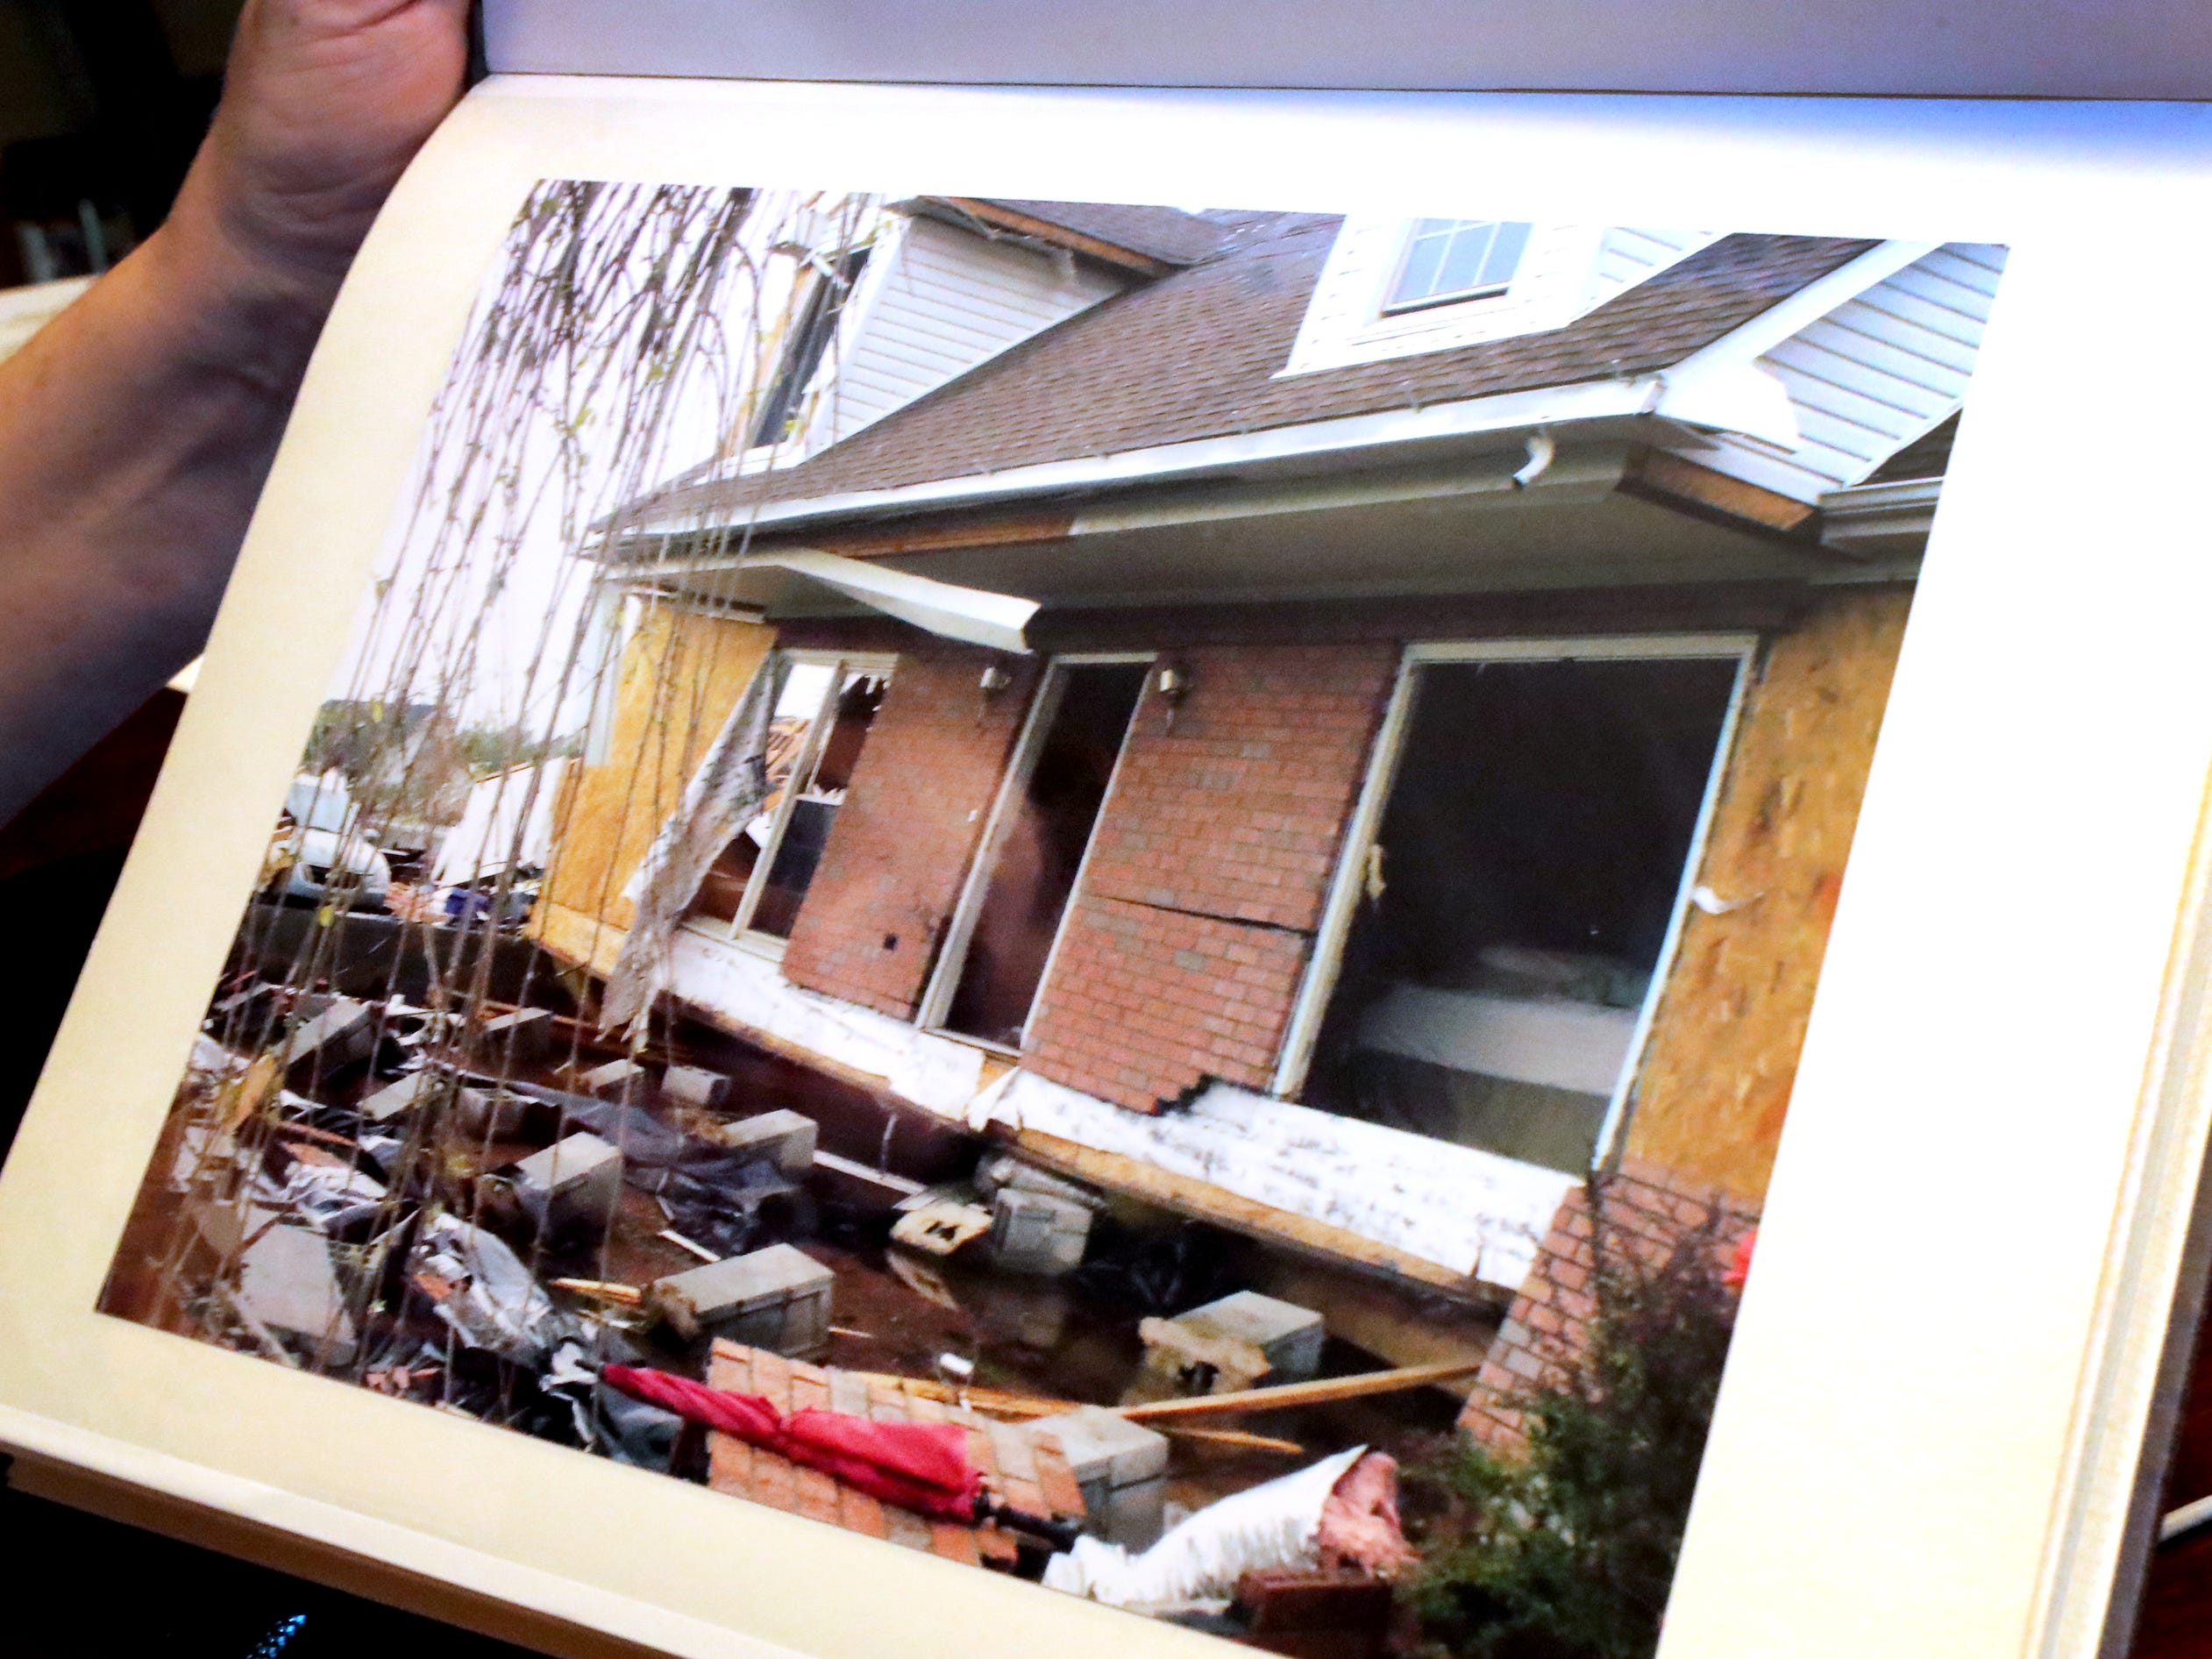 A photo of the Mike and Teresa Bickford's old home that was destroyed by the 2009 Good Friday tornado, on Wednesday March 27, 2019.